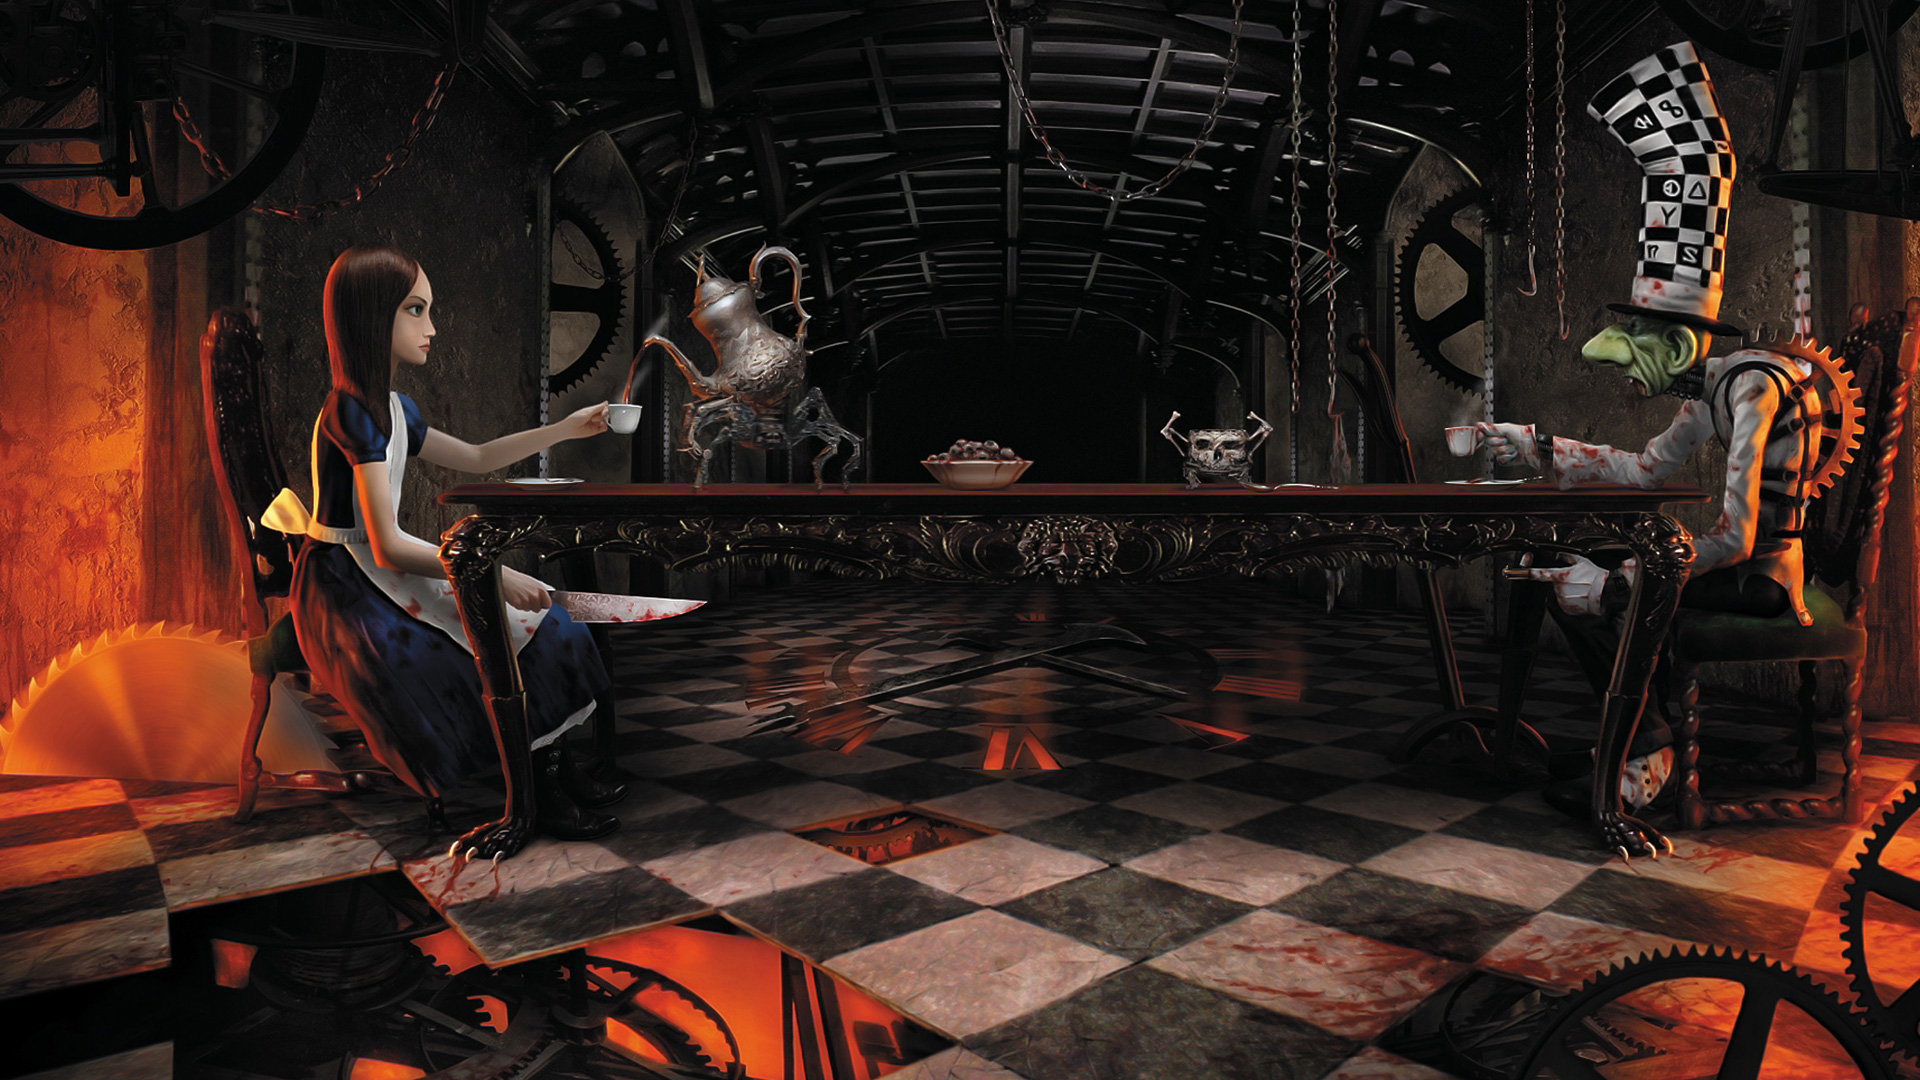 American McGee's Alice Wallpaper in 1920x1080